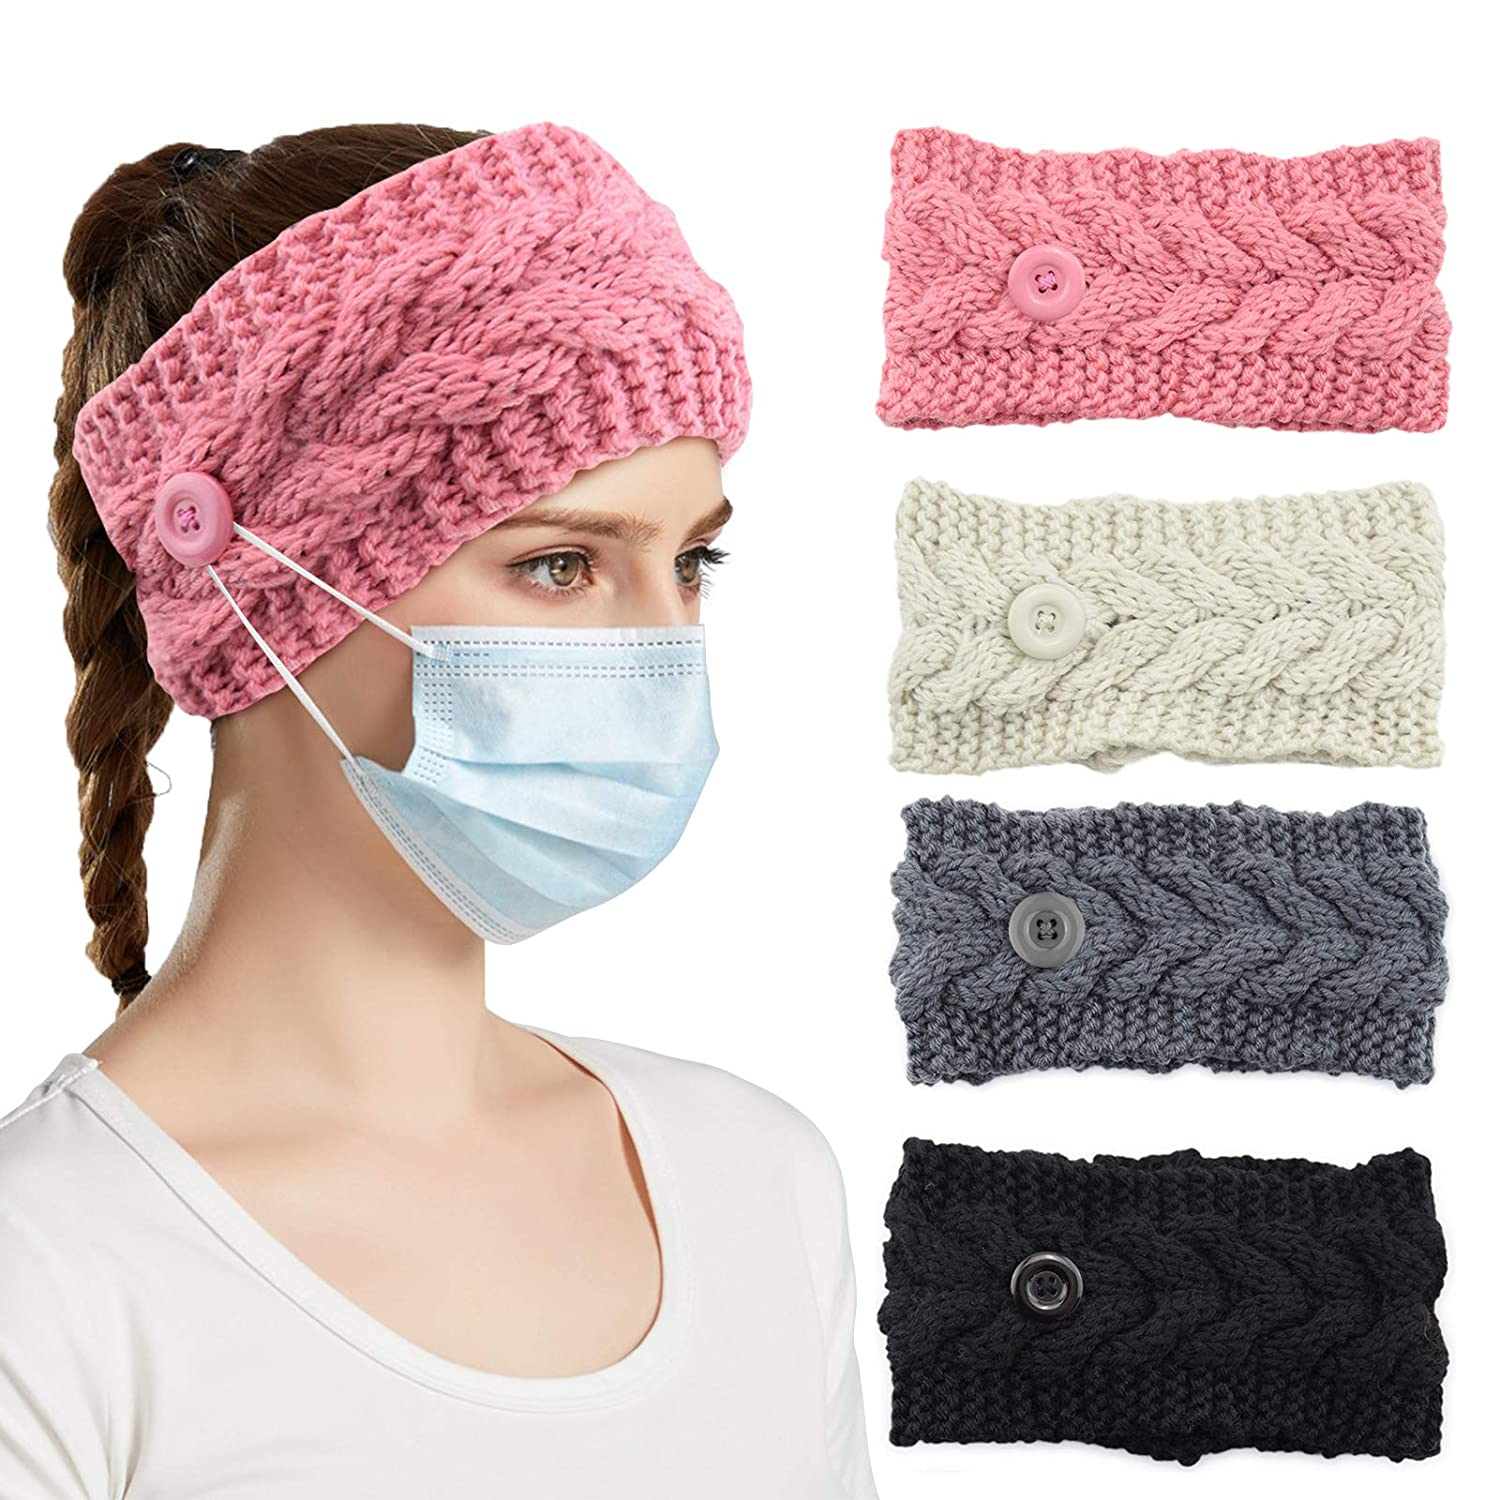 4 PCS Winter Headbands for Women, Knit Headband Ear Warmer with Button for Skating, Shopping, Skiing and Outdoor Activities, Crochet Head Wraps Ear Protection Holder